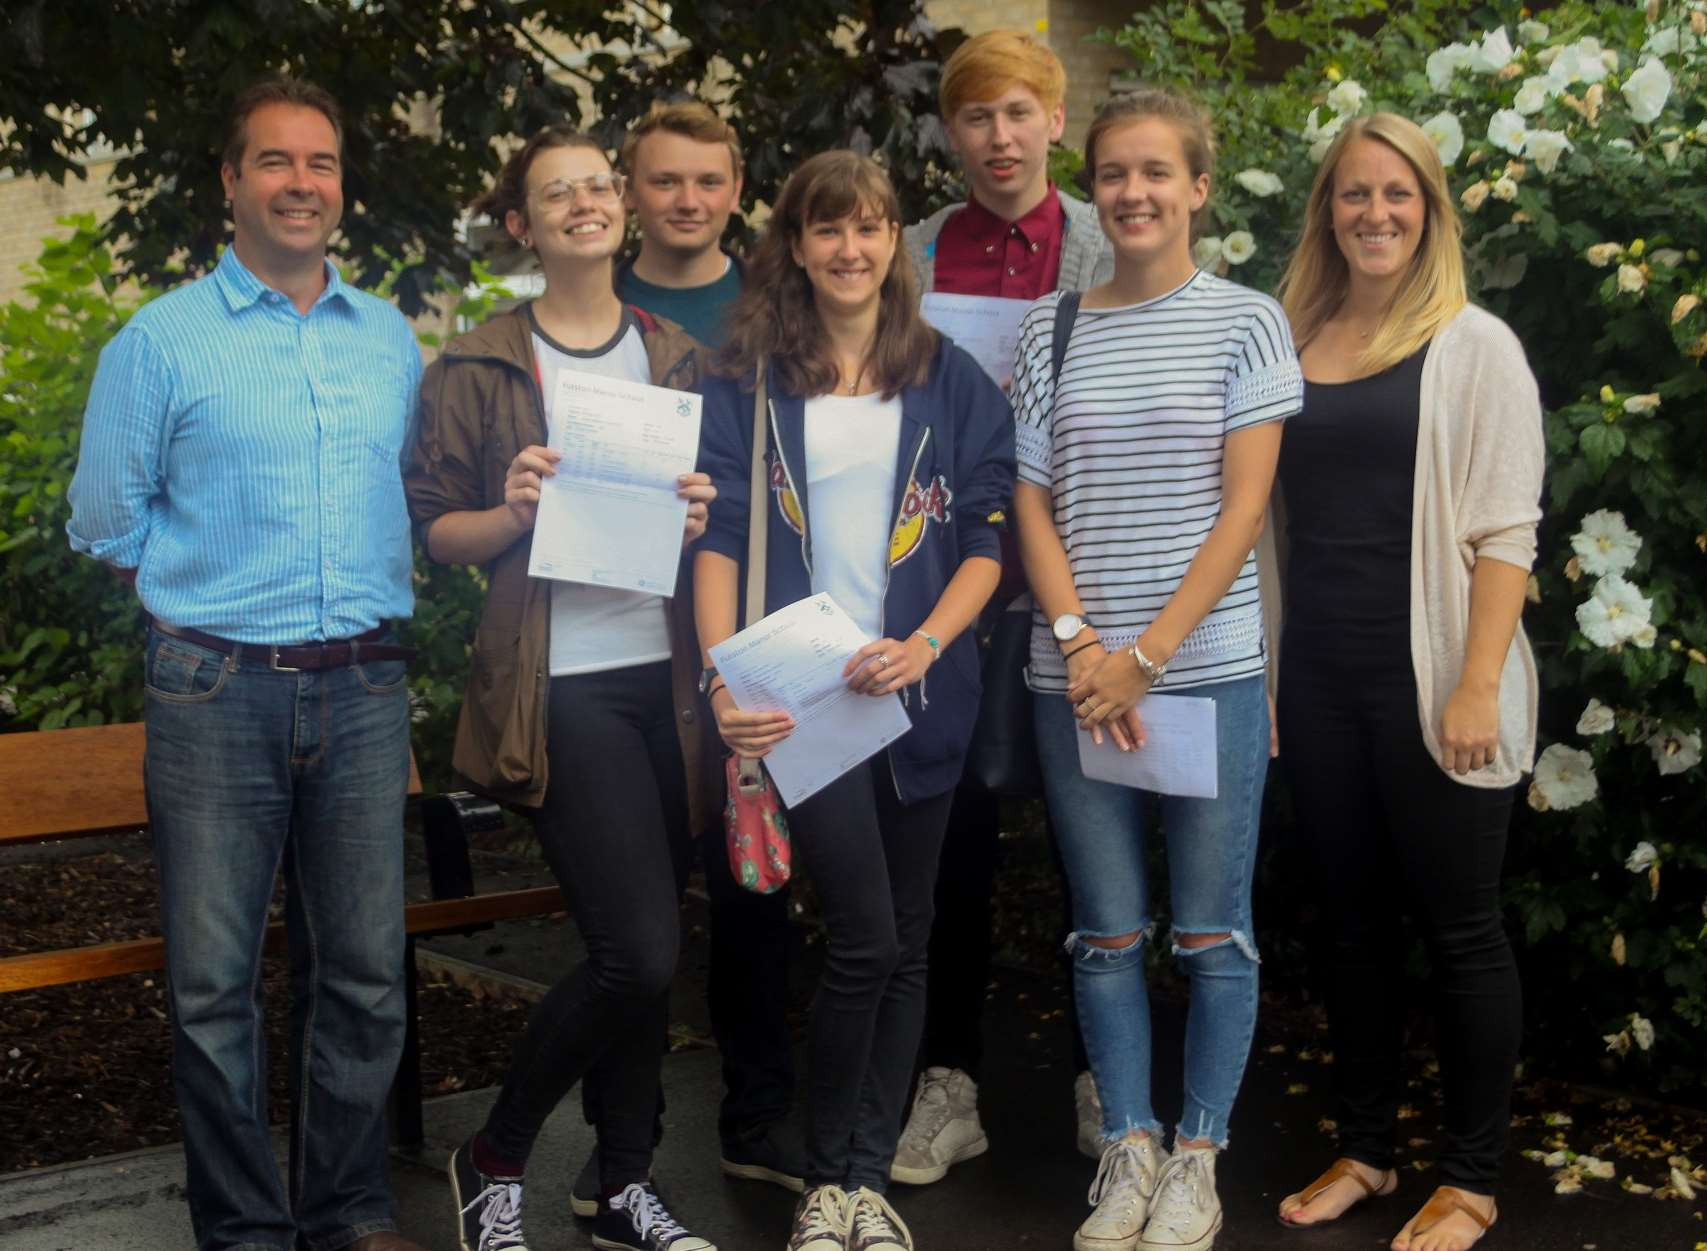 Fulston students and staff celebrate A-level results day